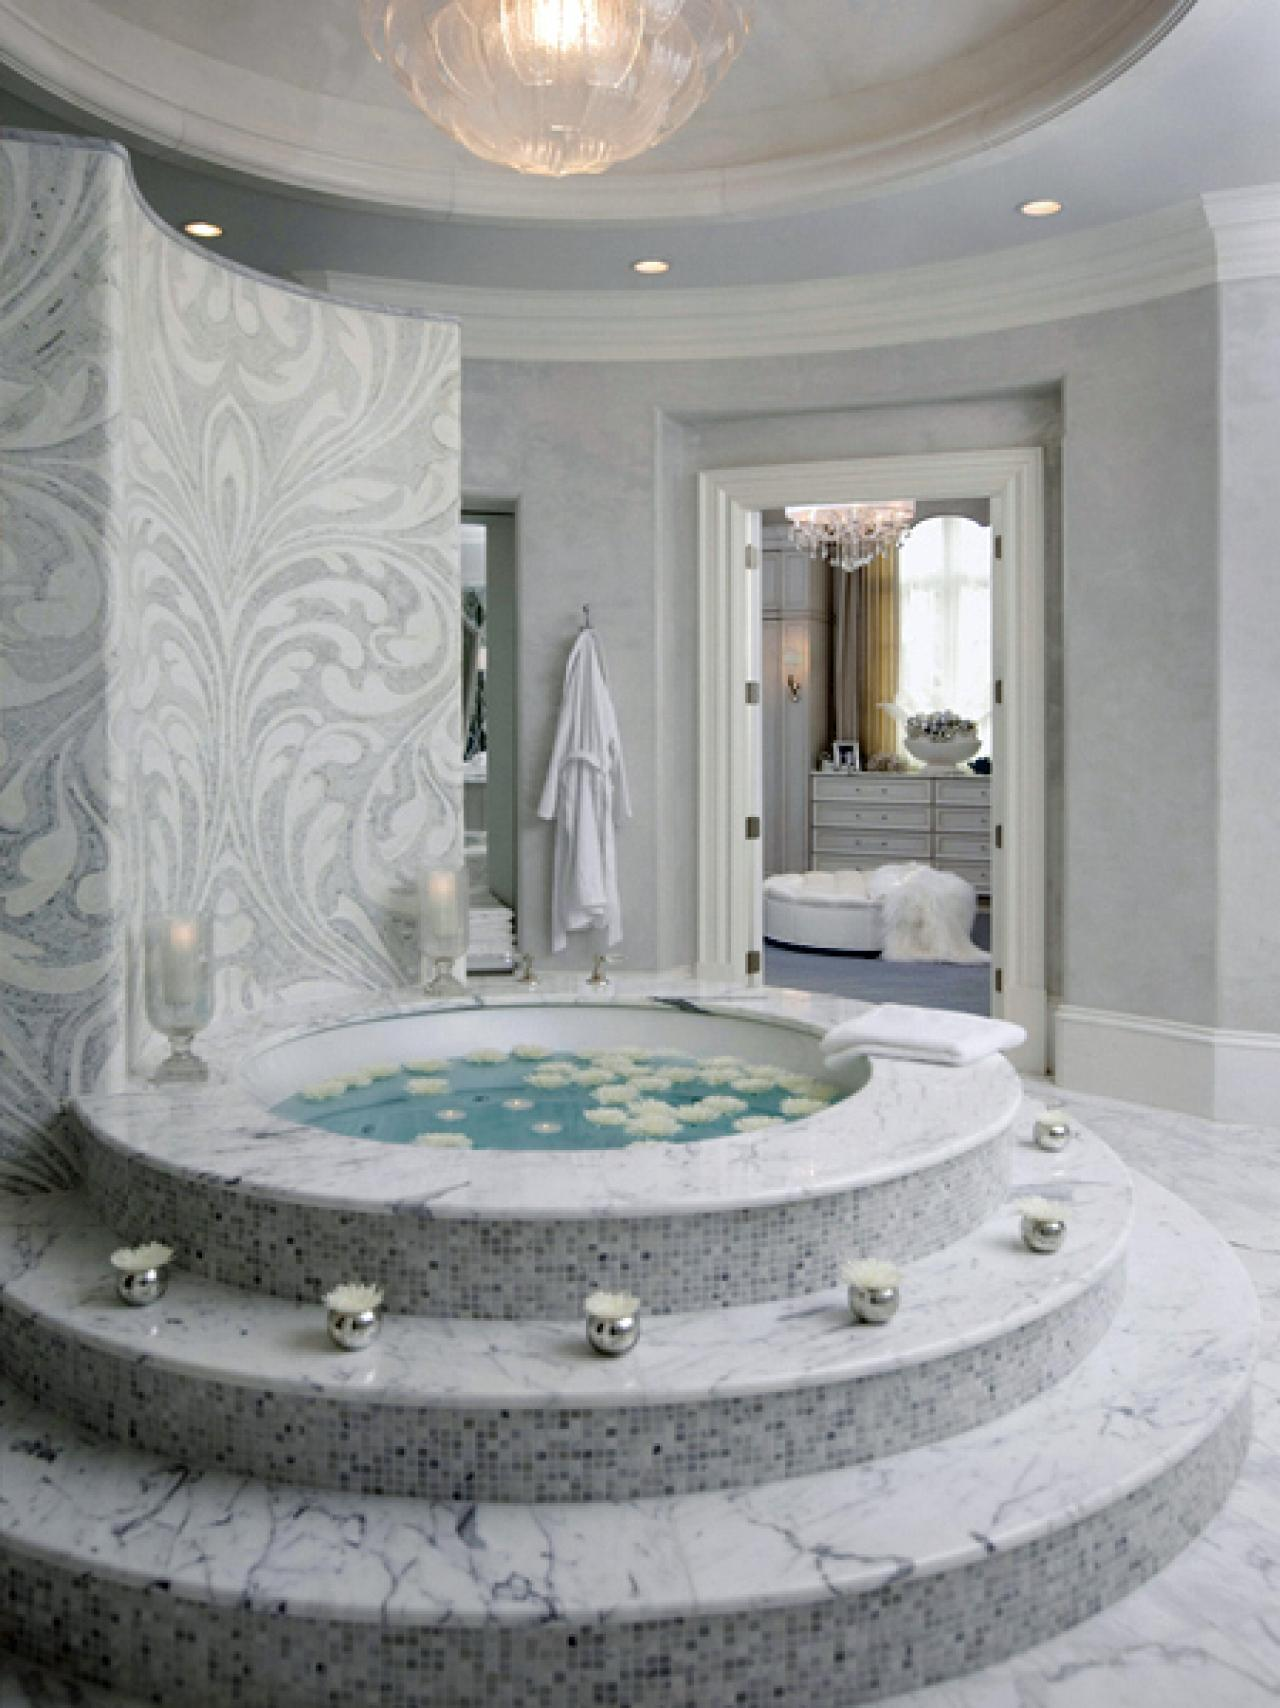 Cast iron bathtub designs pictures ideas tips from for Design my bathroom